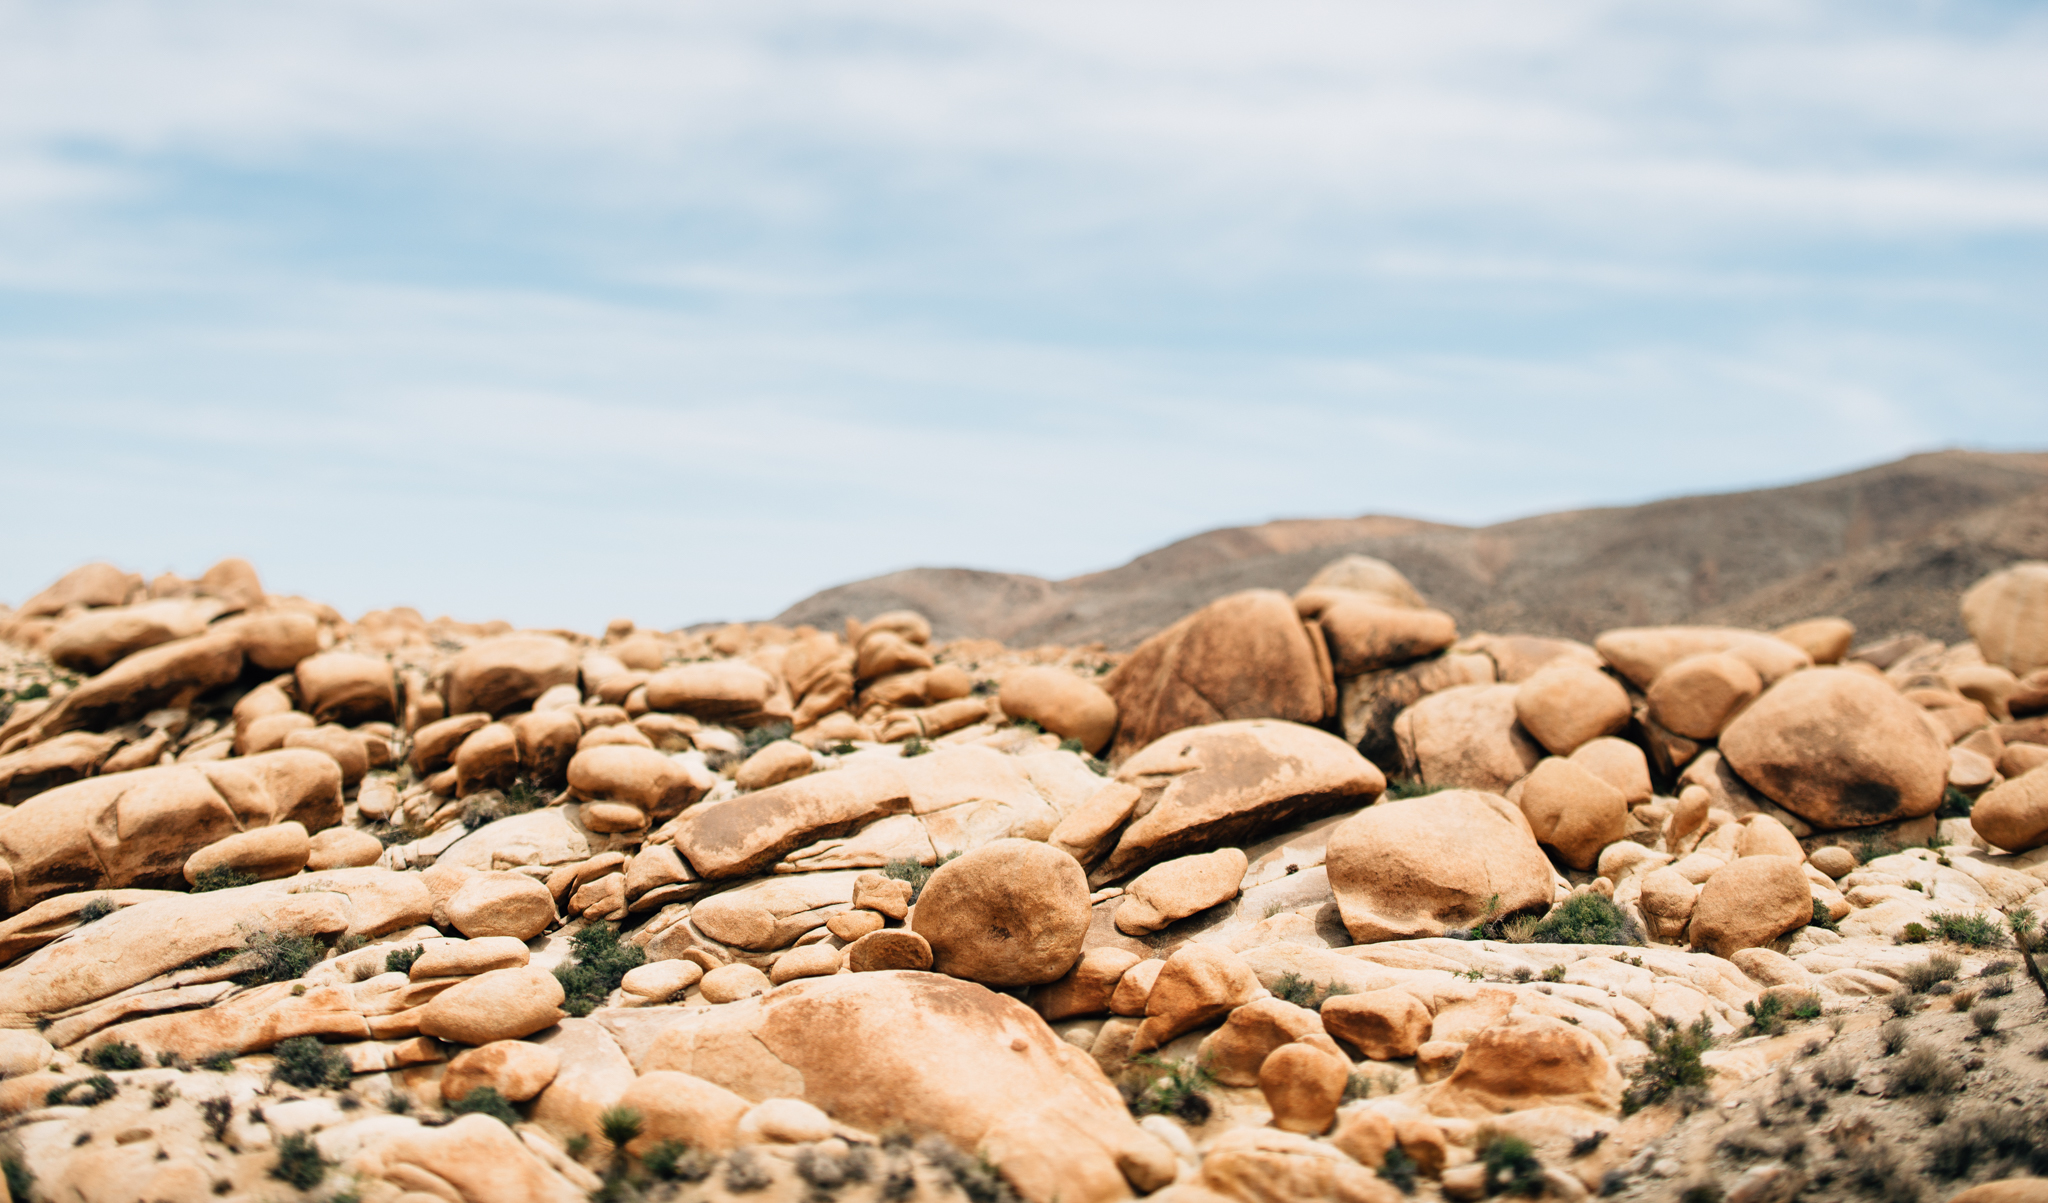 ©The Ryans Photography - Los Angeles Travel - Joshua Tree National Park-012.jpg